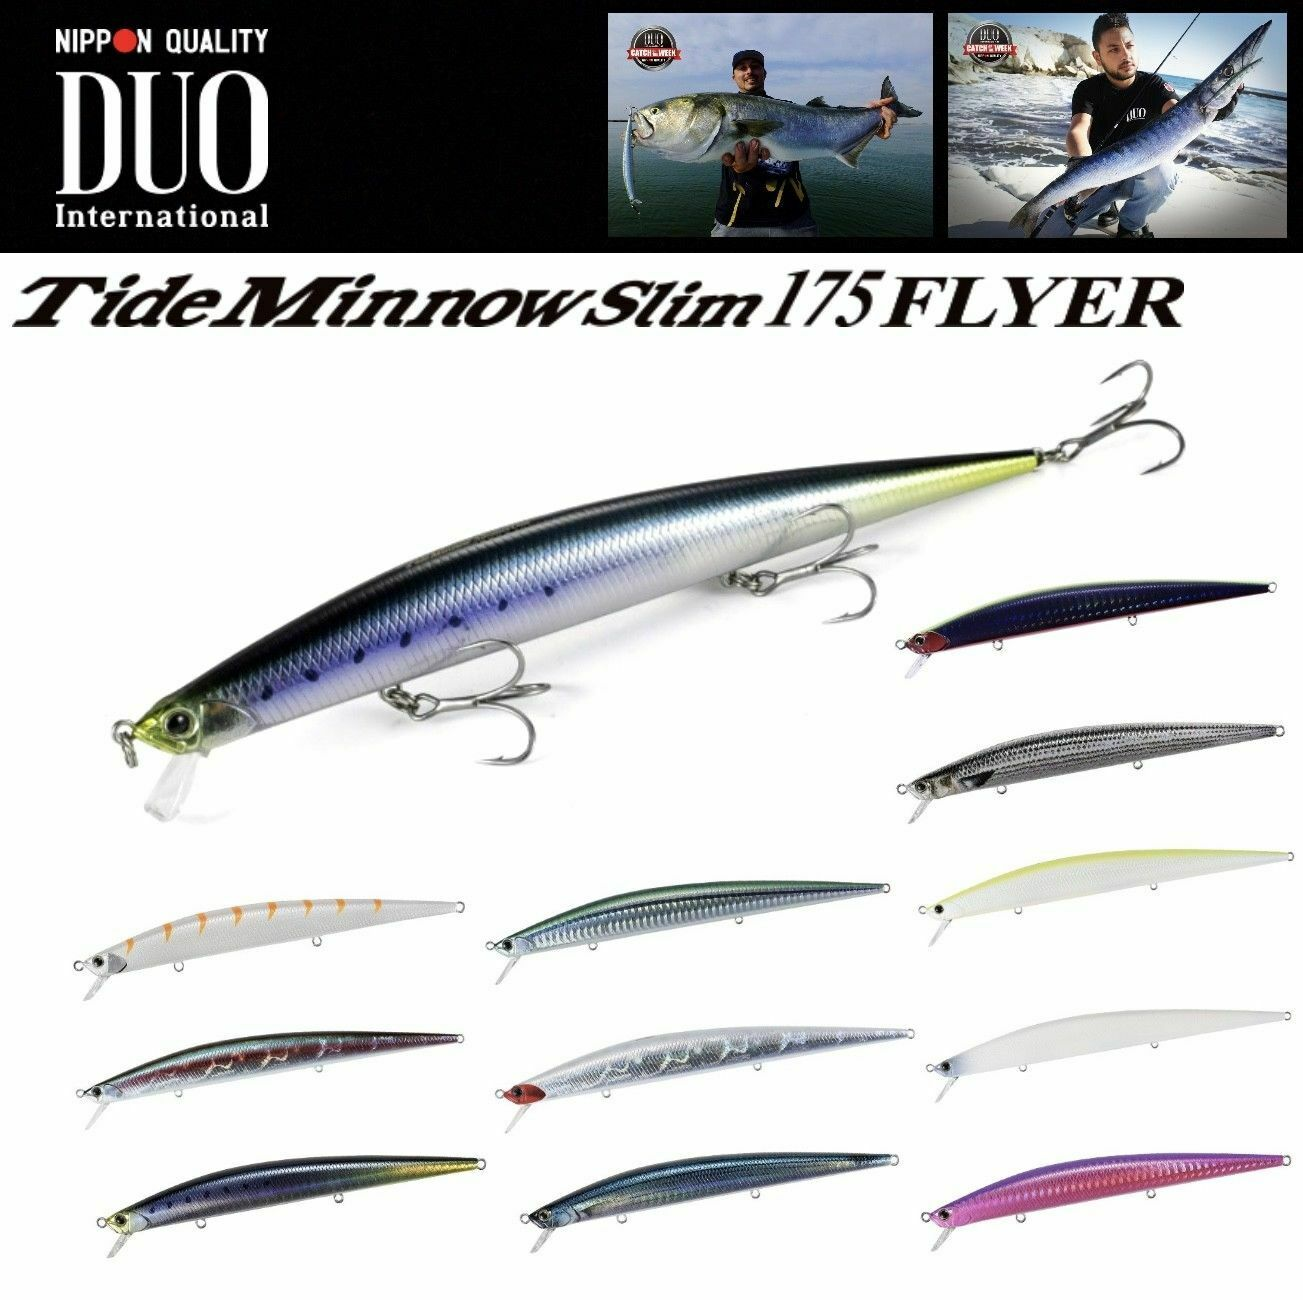 Duo ultimate long minnow lure advanced line tide minnow for Slime line fishing line